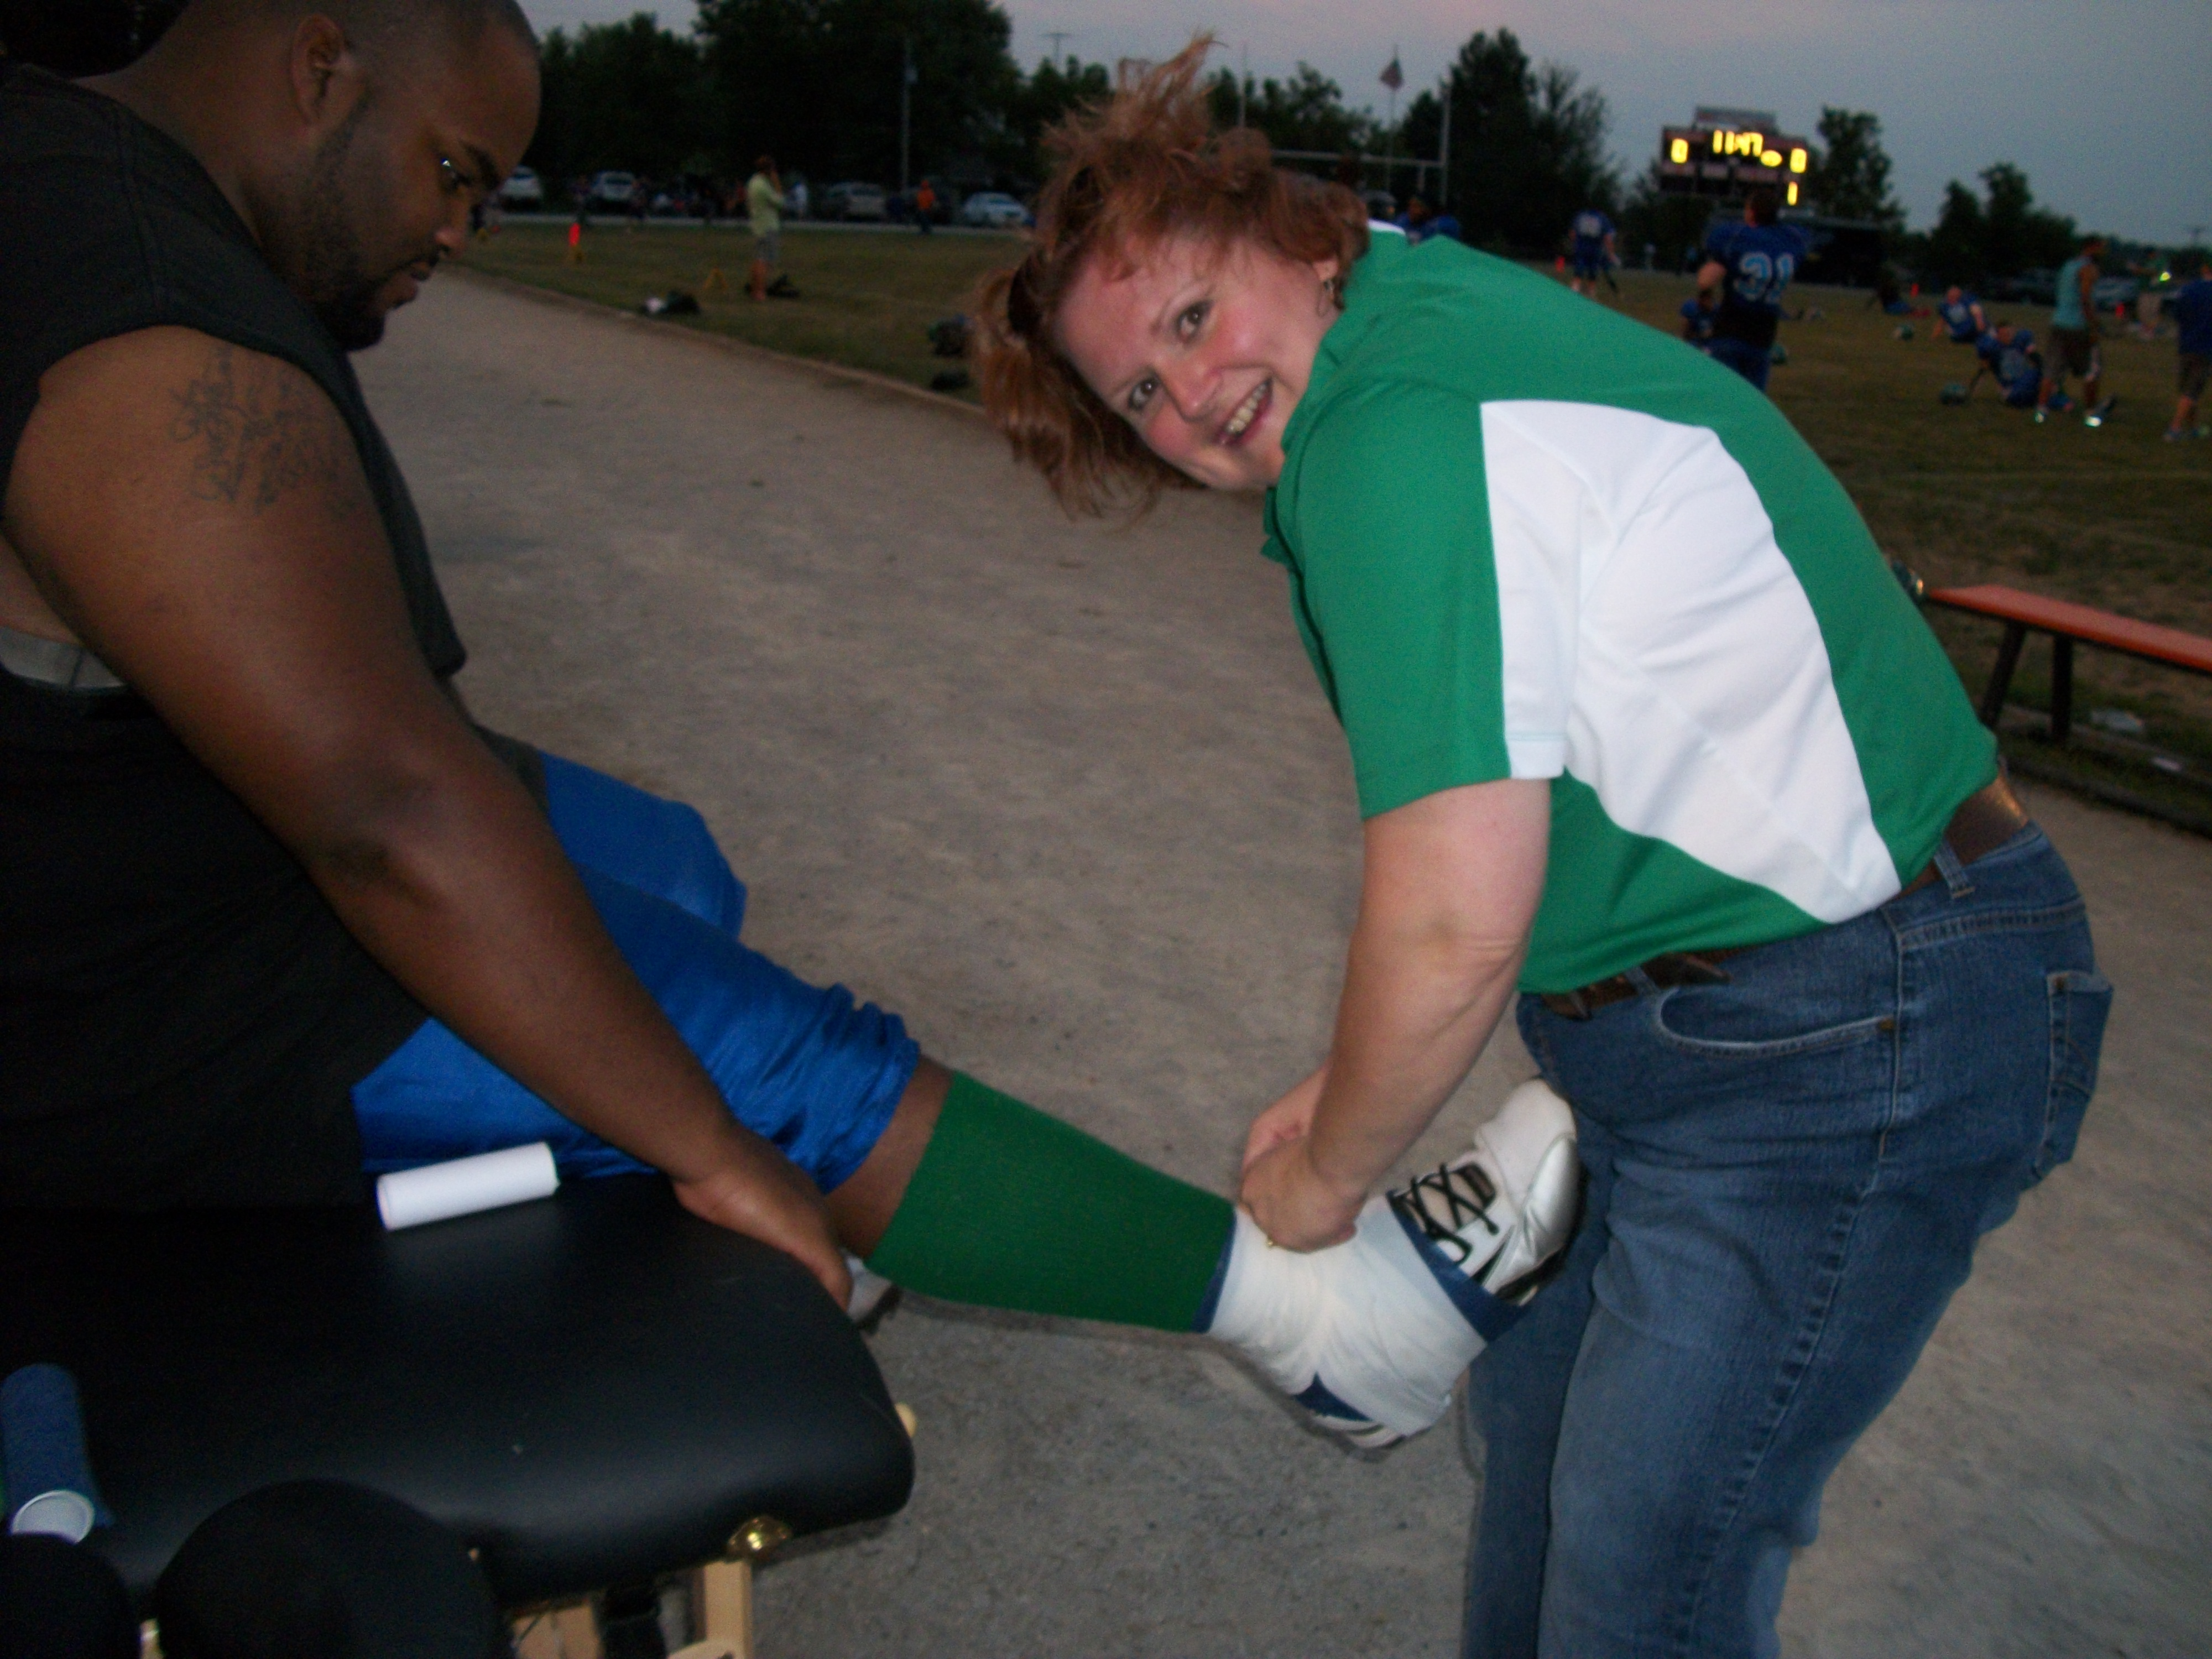 Assistant Trainer Eugena Austin, LMT tapes a player's ankle on the Foxes sideline.